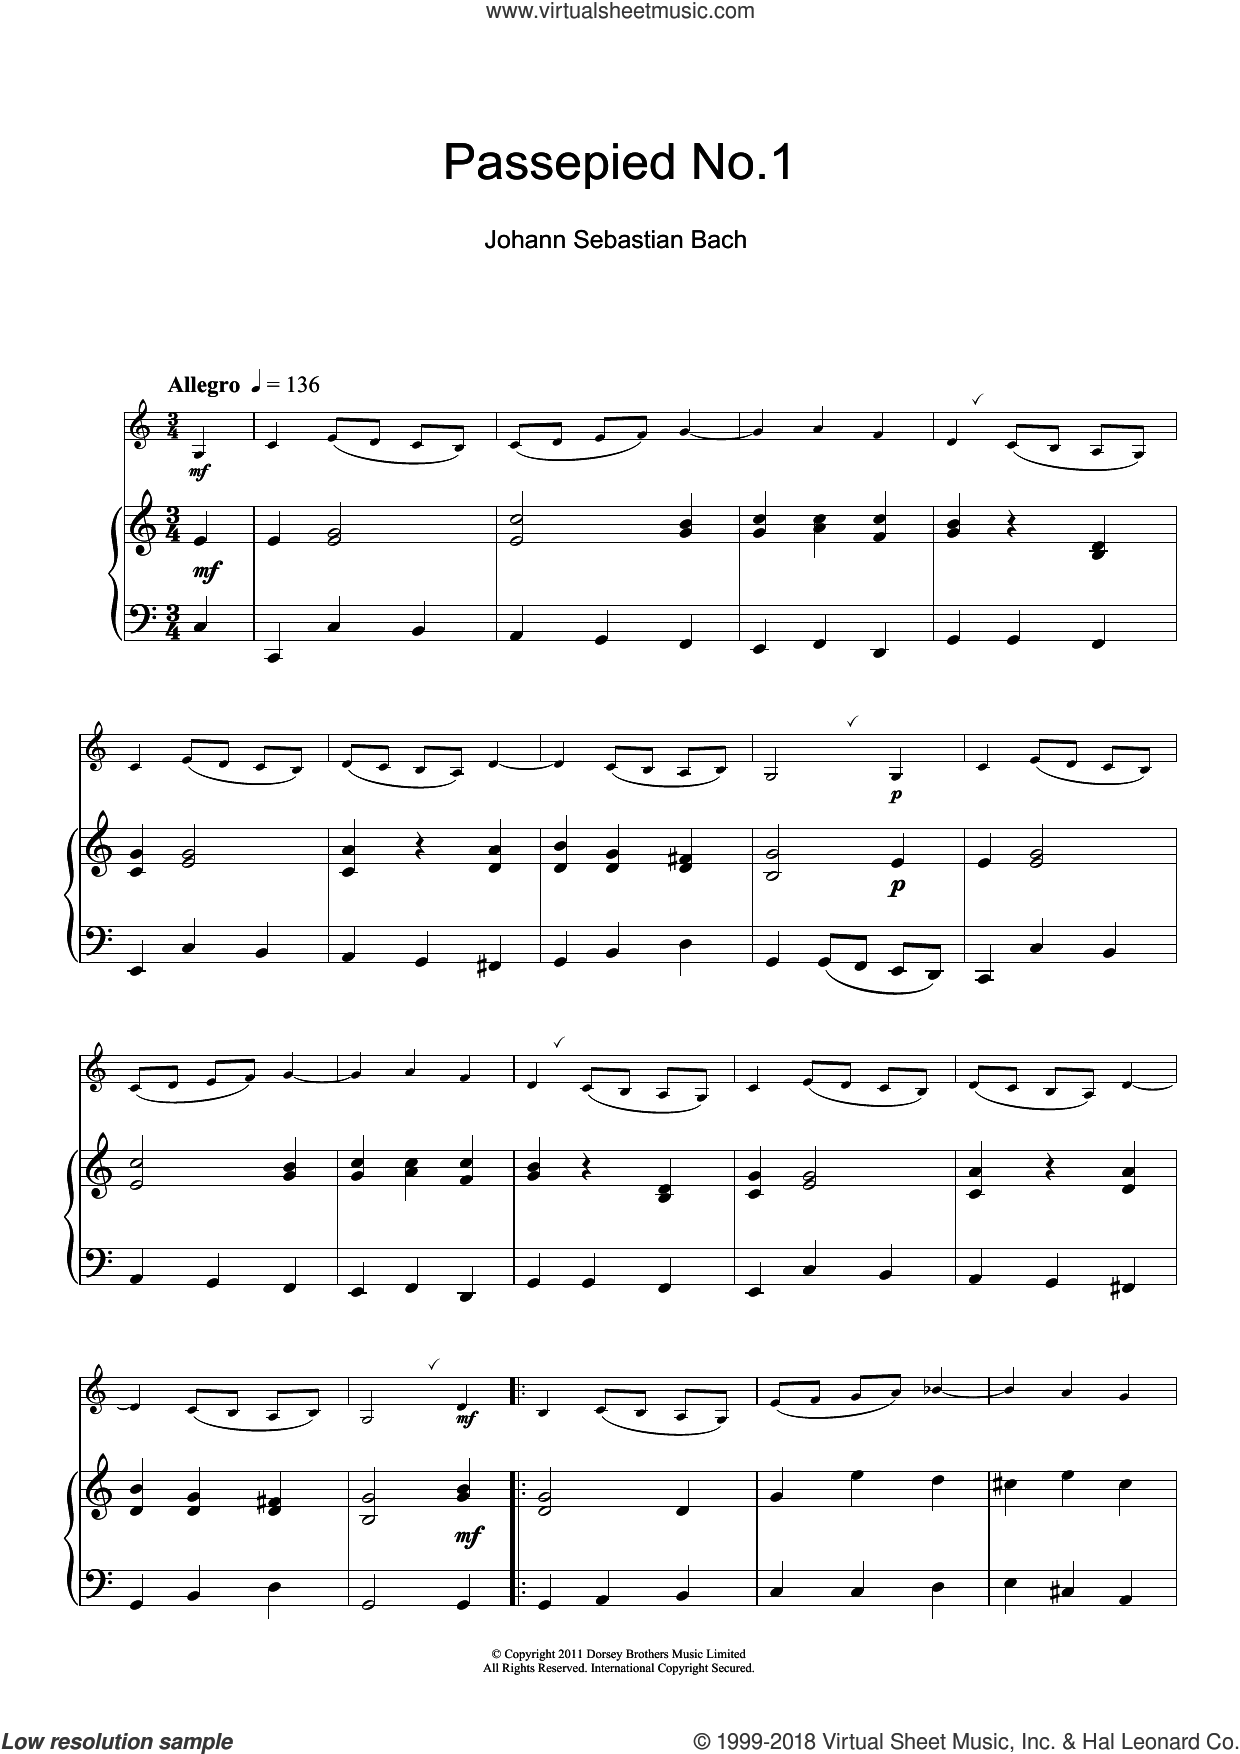 Passepied No.1 sheet music for clarinet solo by Johann Sebastian Bach, classical score, intermediate skill level